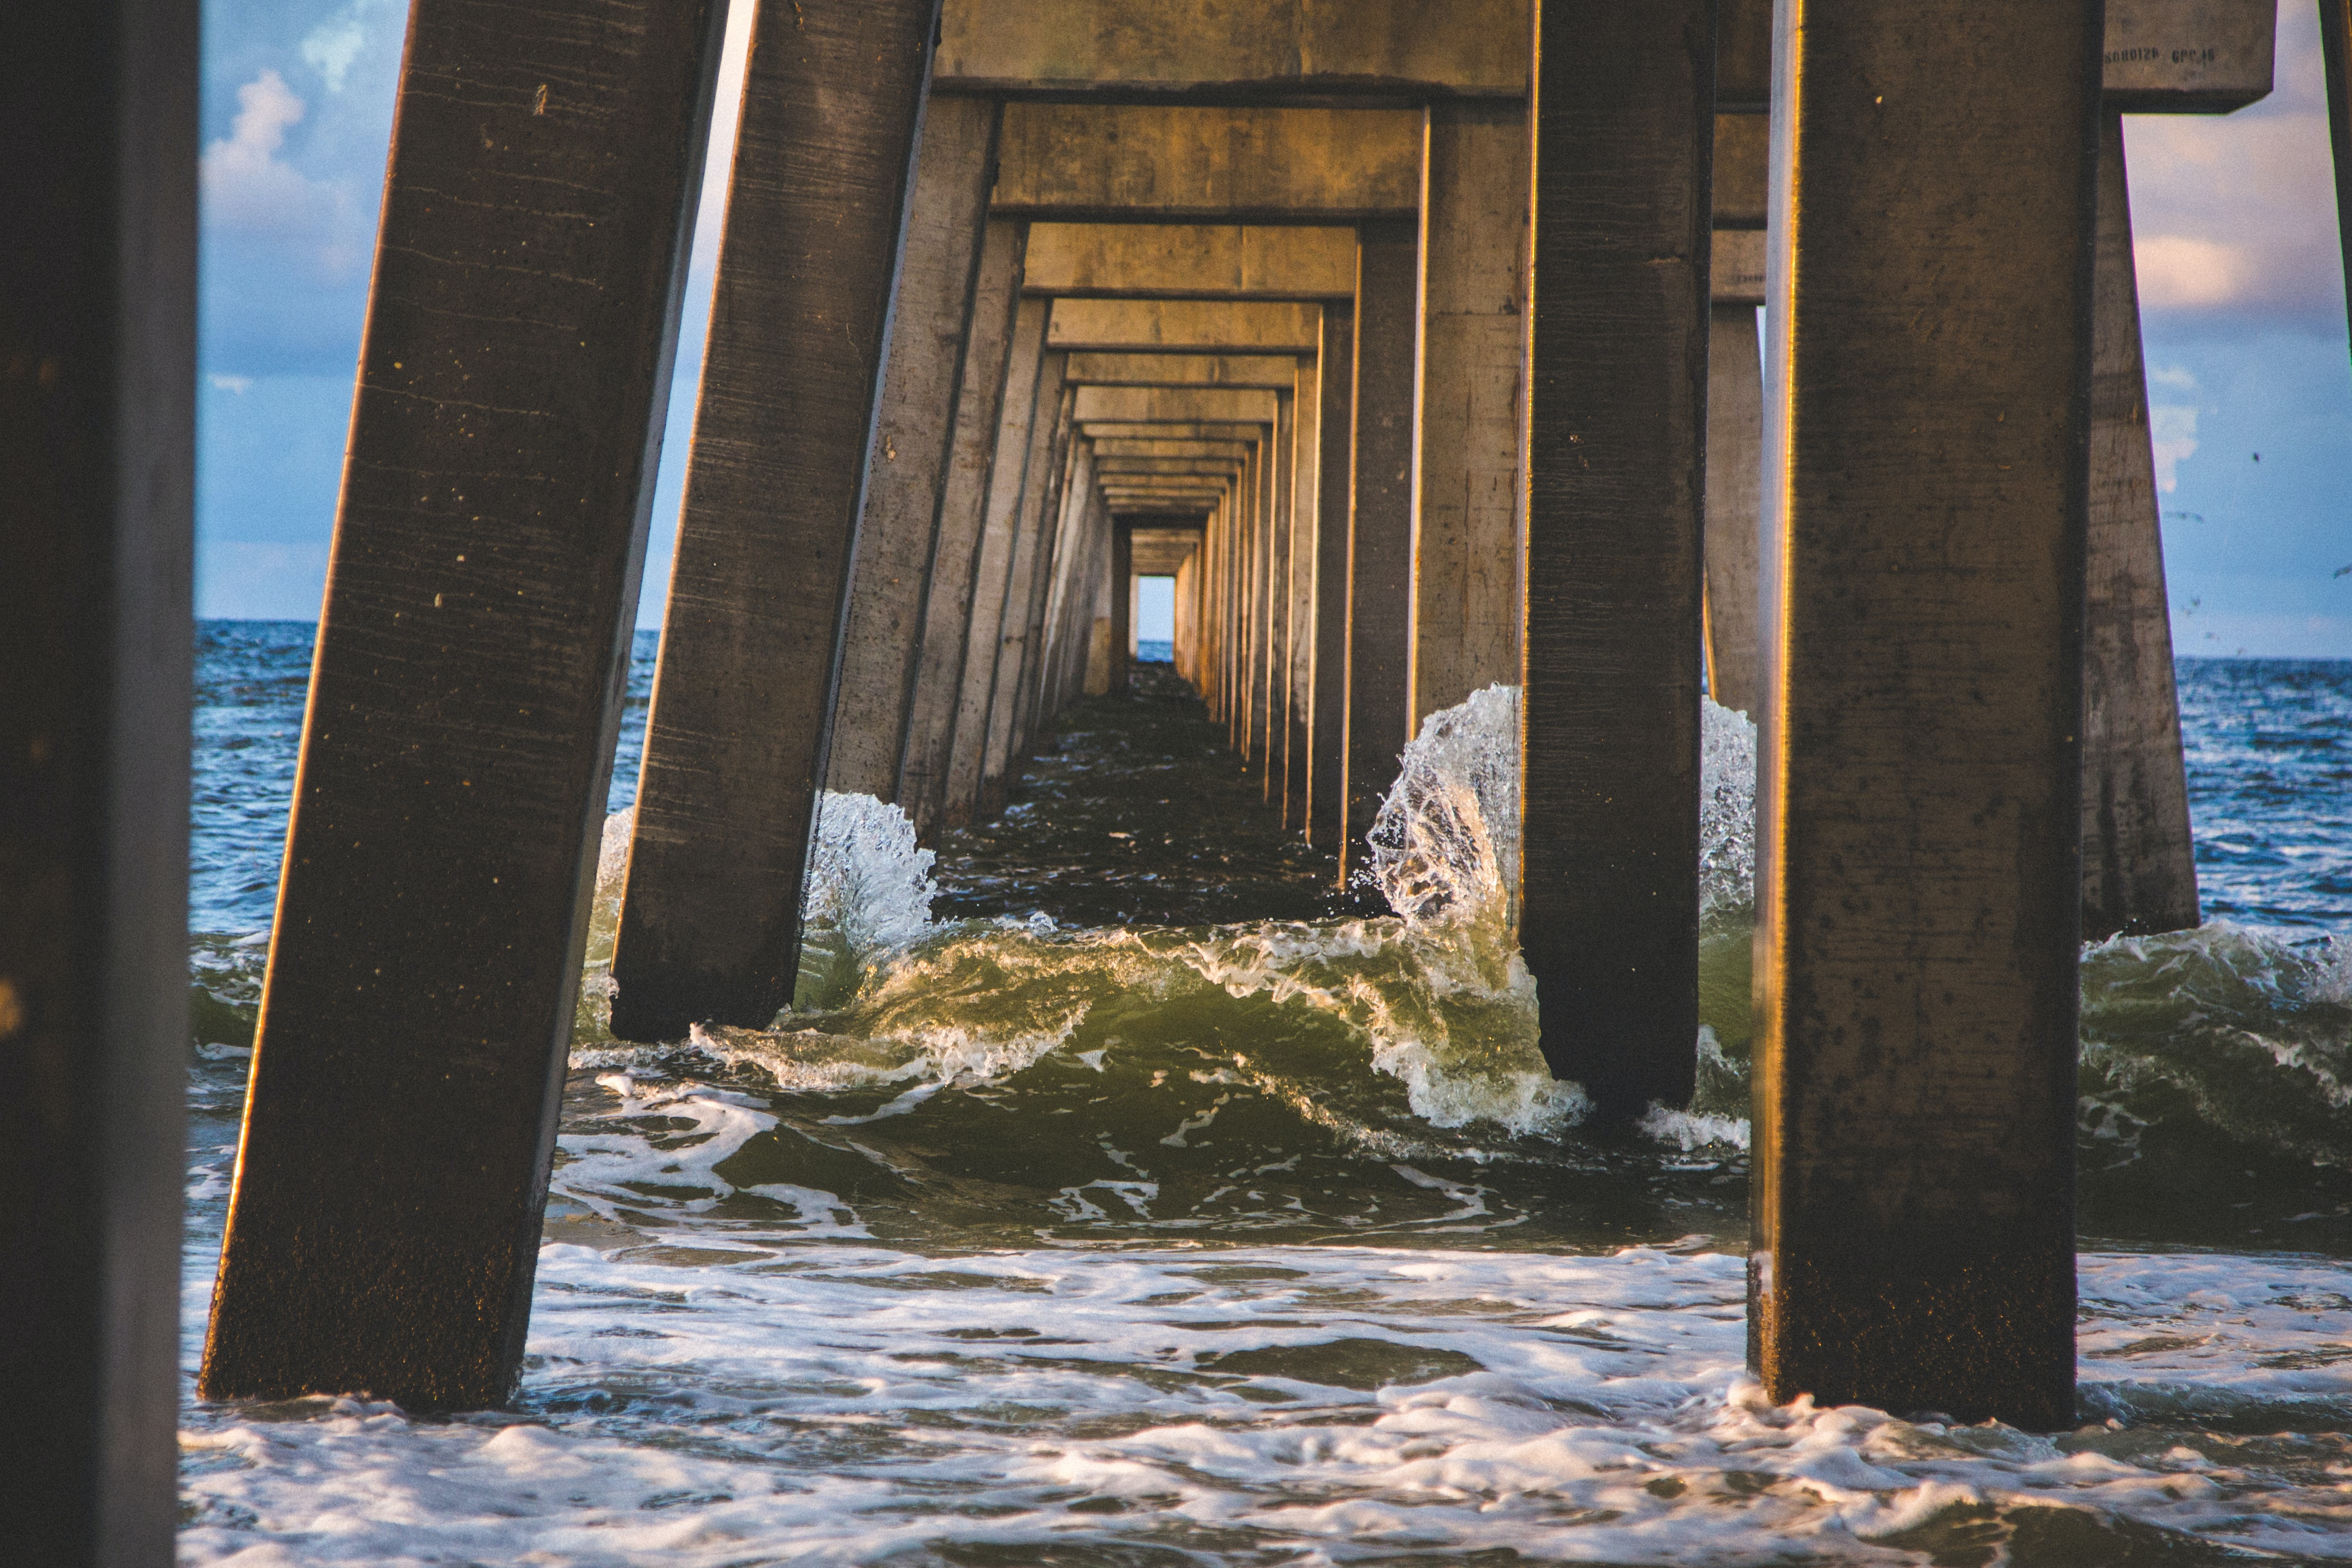 sea waves under brown concrete dock at daytime